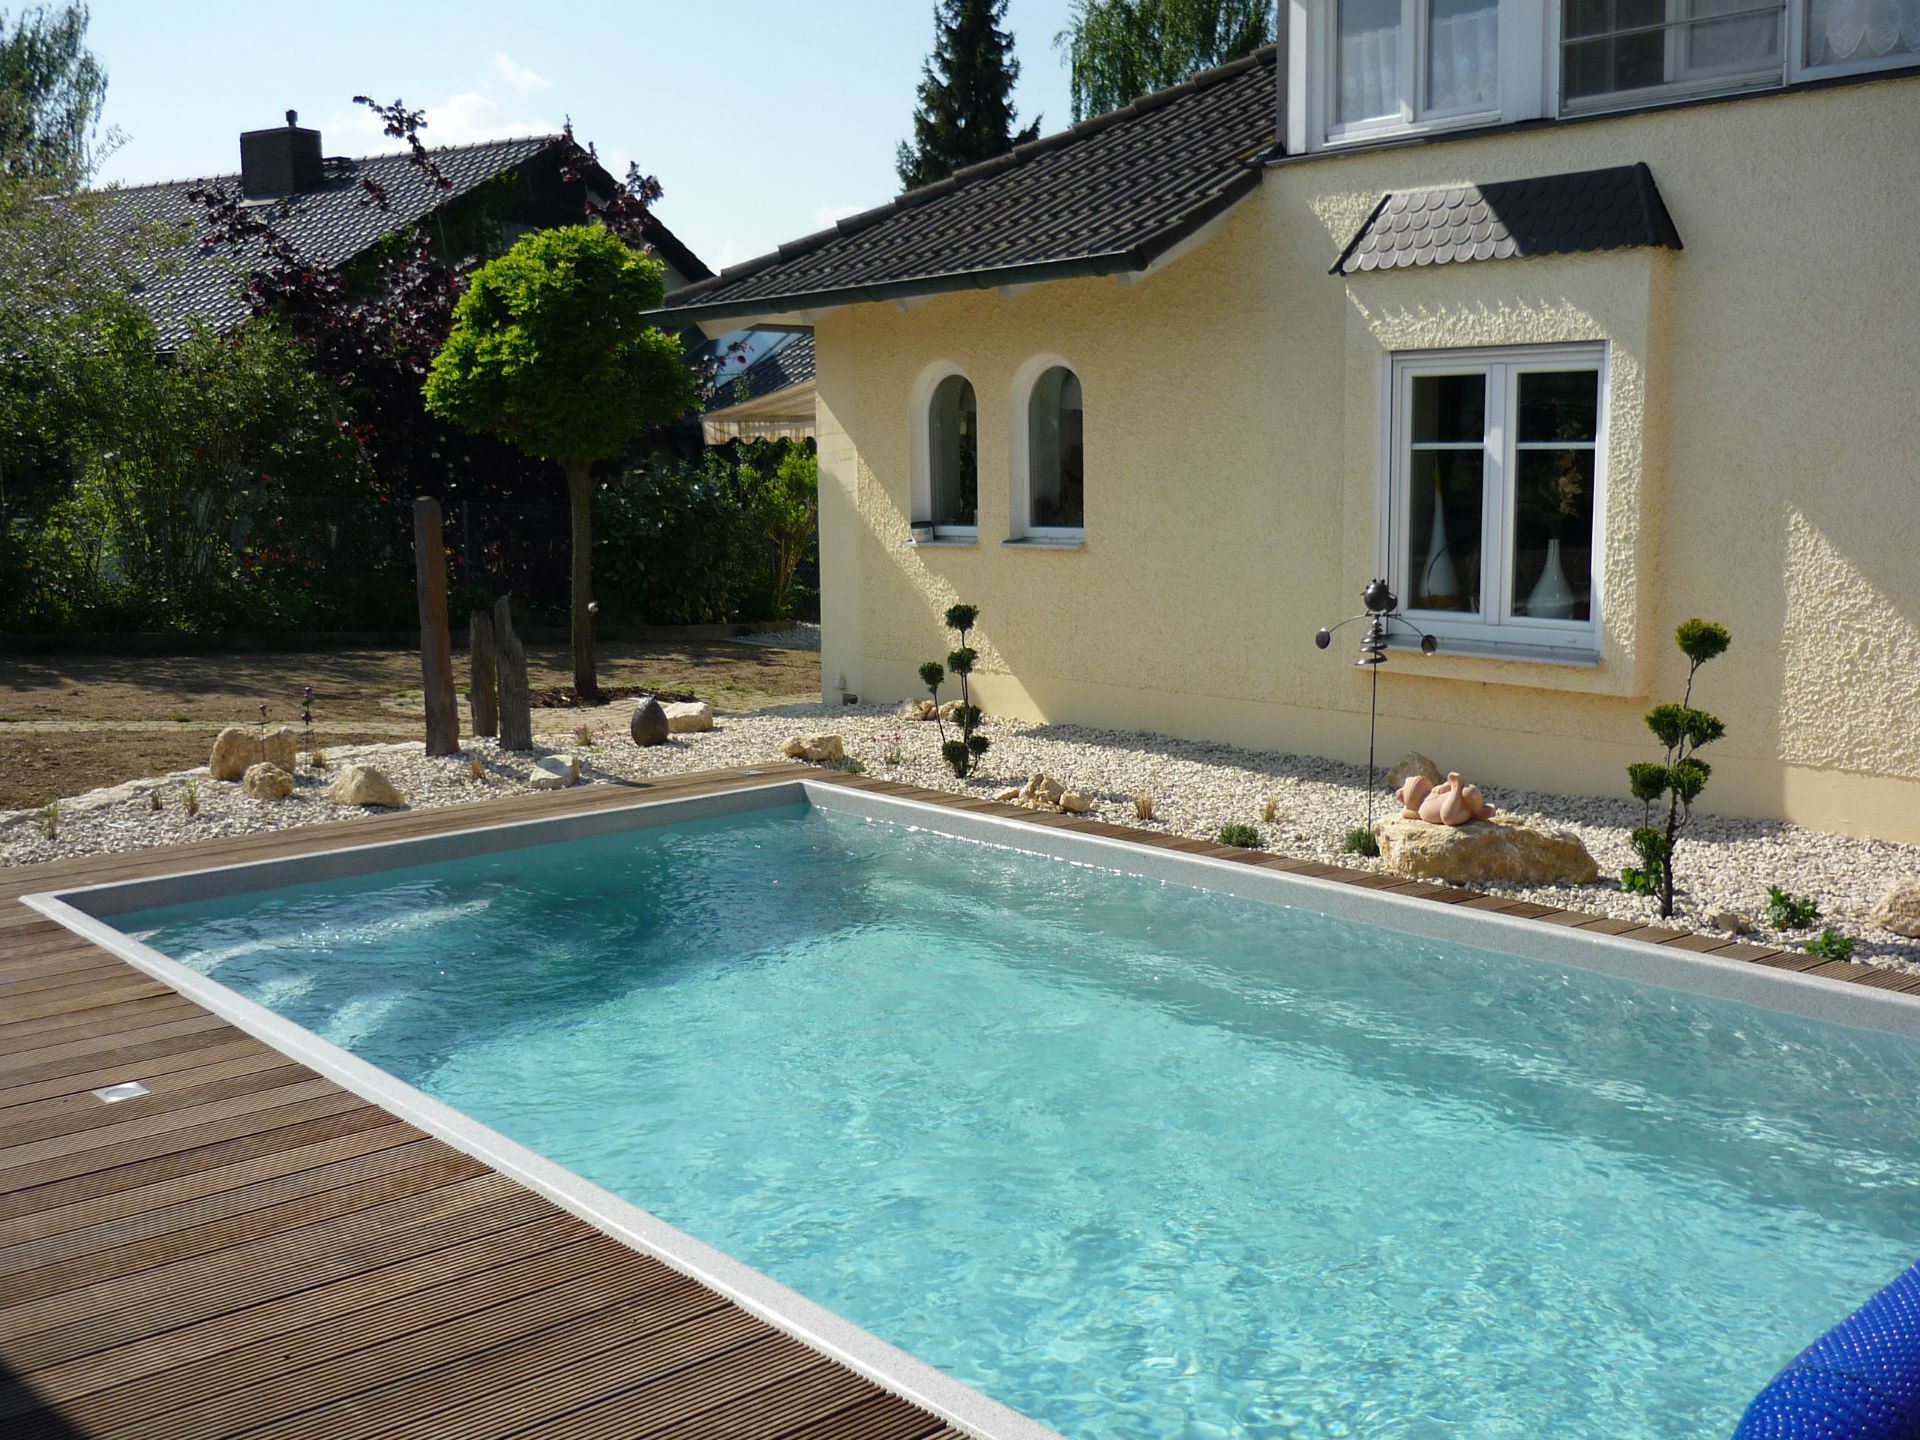 Gfk Pool Formen Pools Pool Wellness Manufaktur